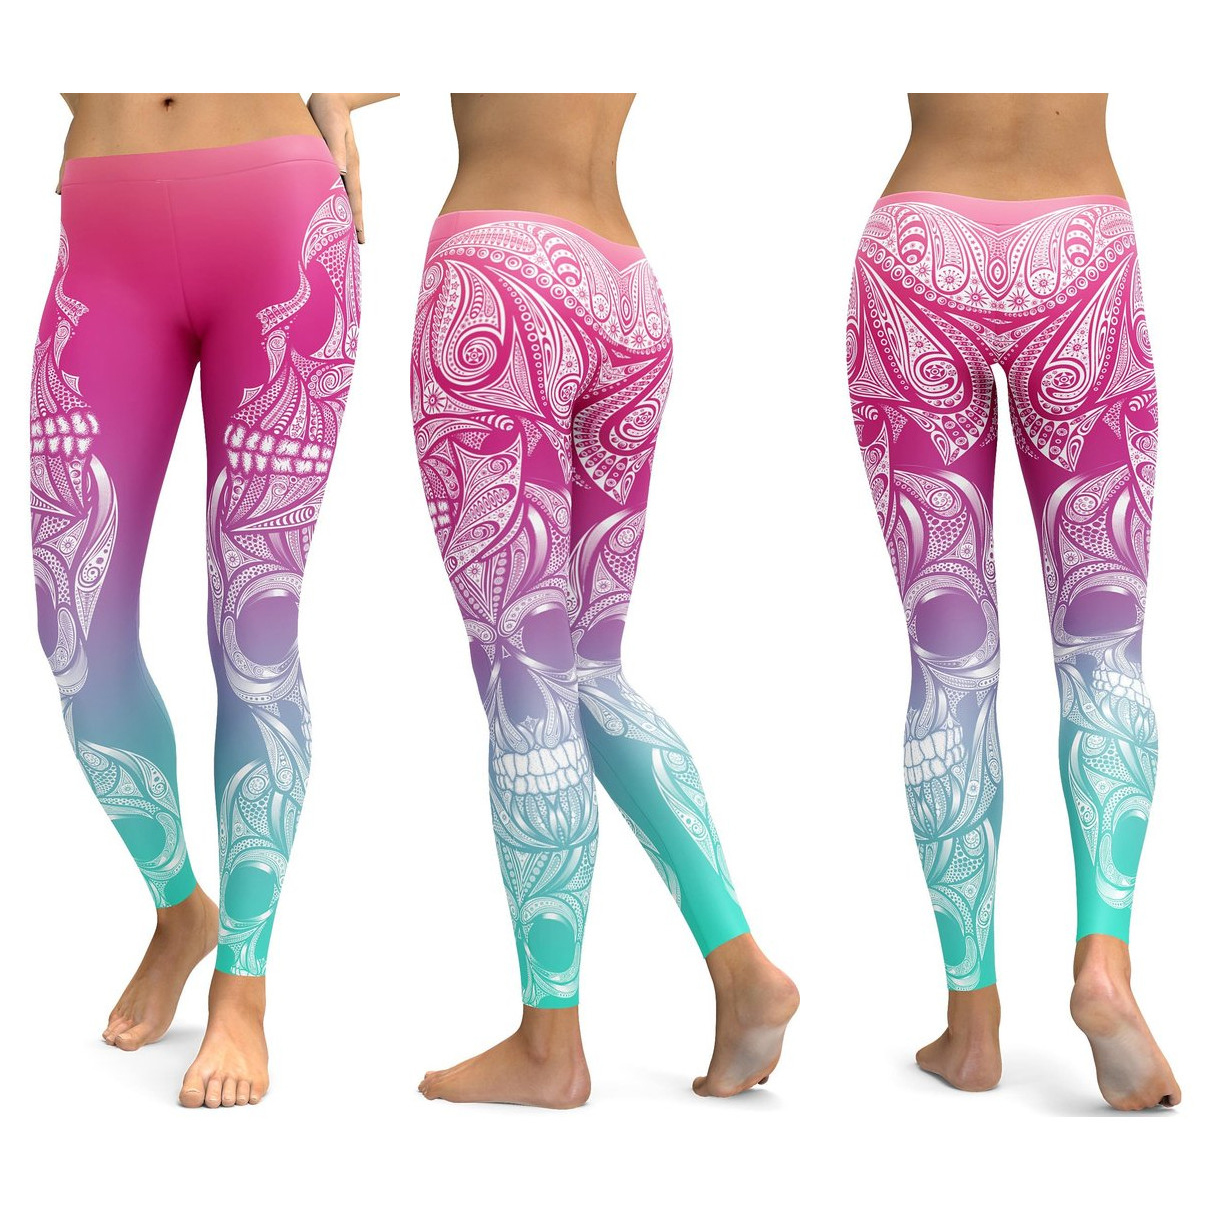 Skull Leggings Yoga Pants Women Sports Pants Fitness Running Sexy Push Up Gym Wear Elastic Slim Workout Leggings 32